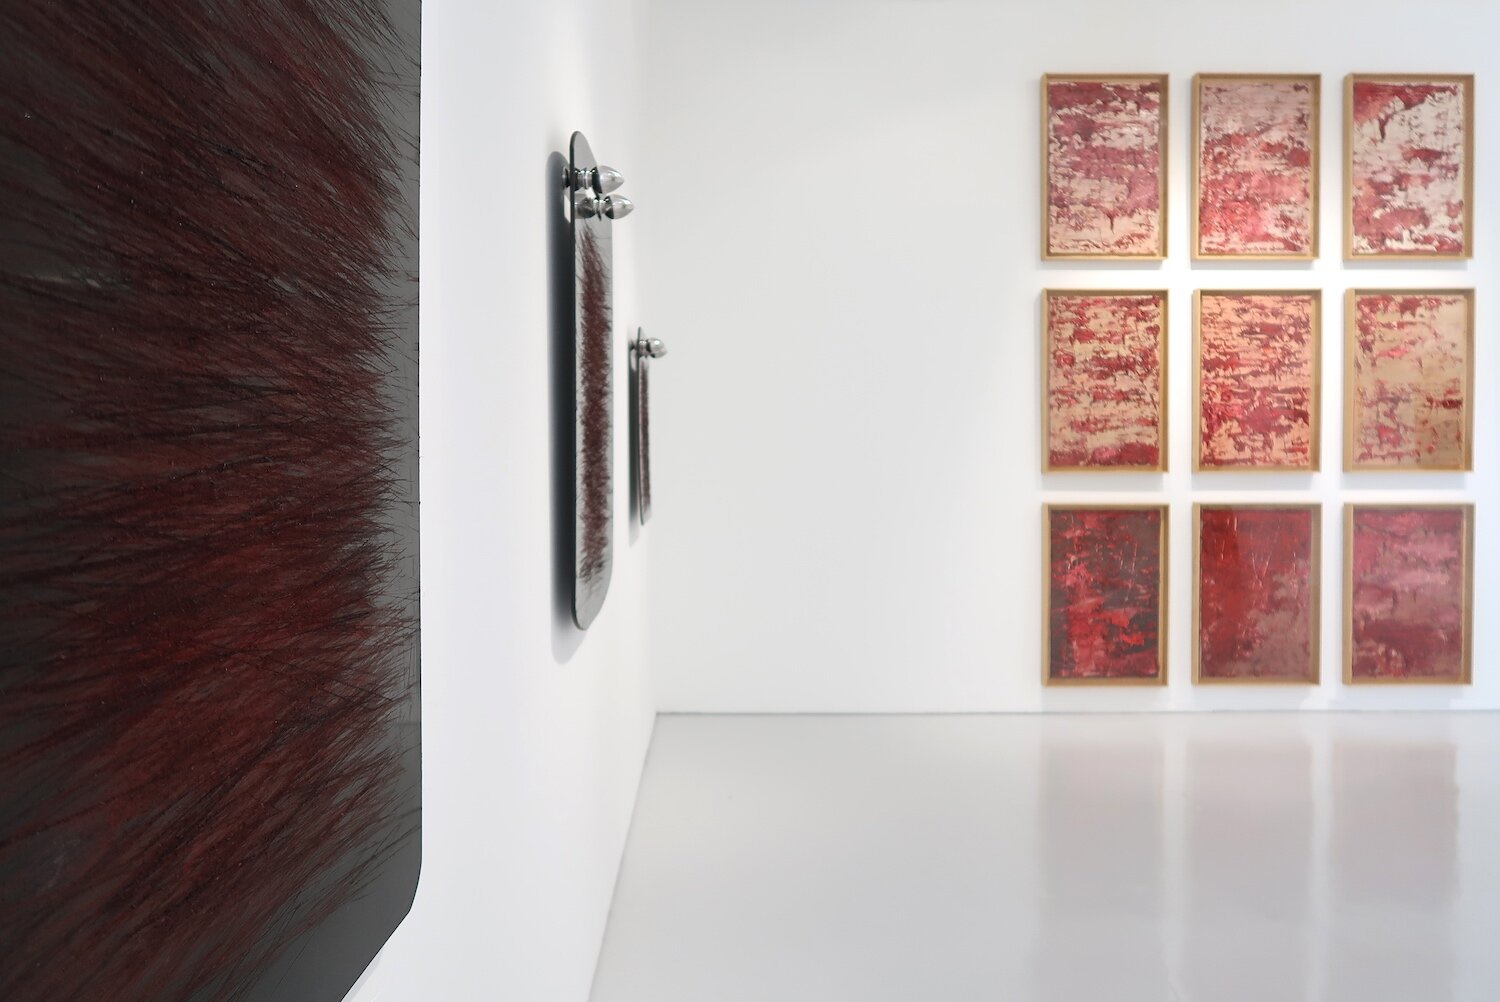 Yeoh Choo Kuan, 'Today's Special', 2020, exhibition installation shot at RKFA. Image courtesy of RKFA.